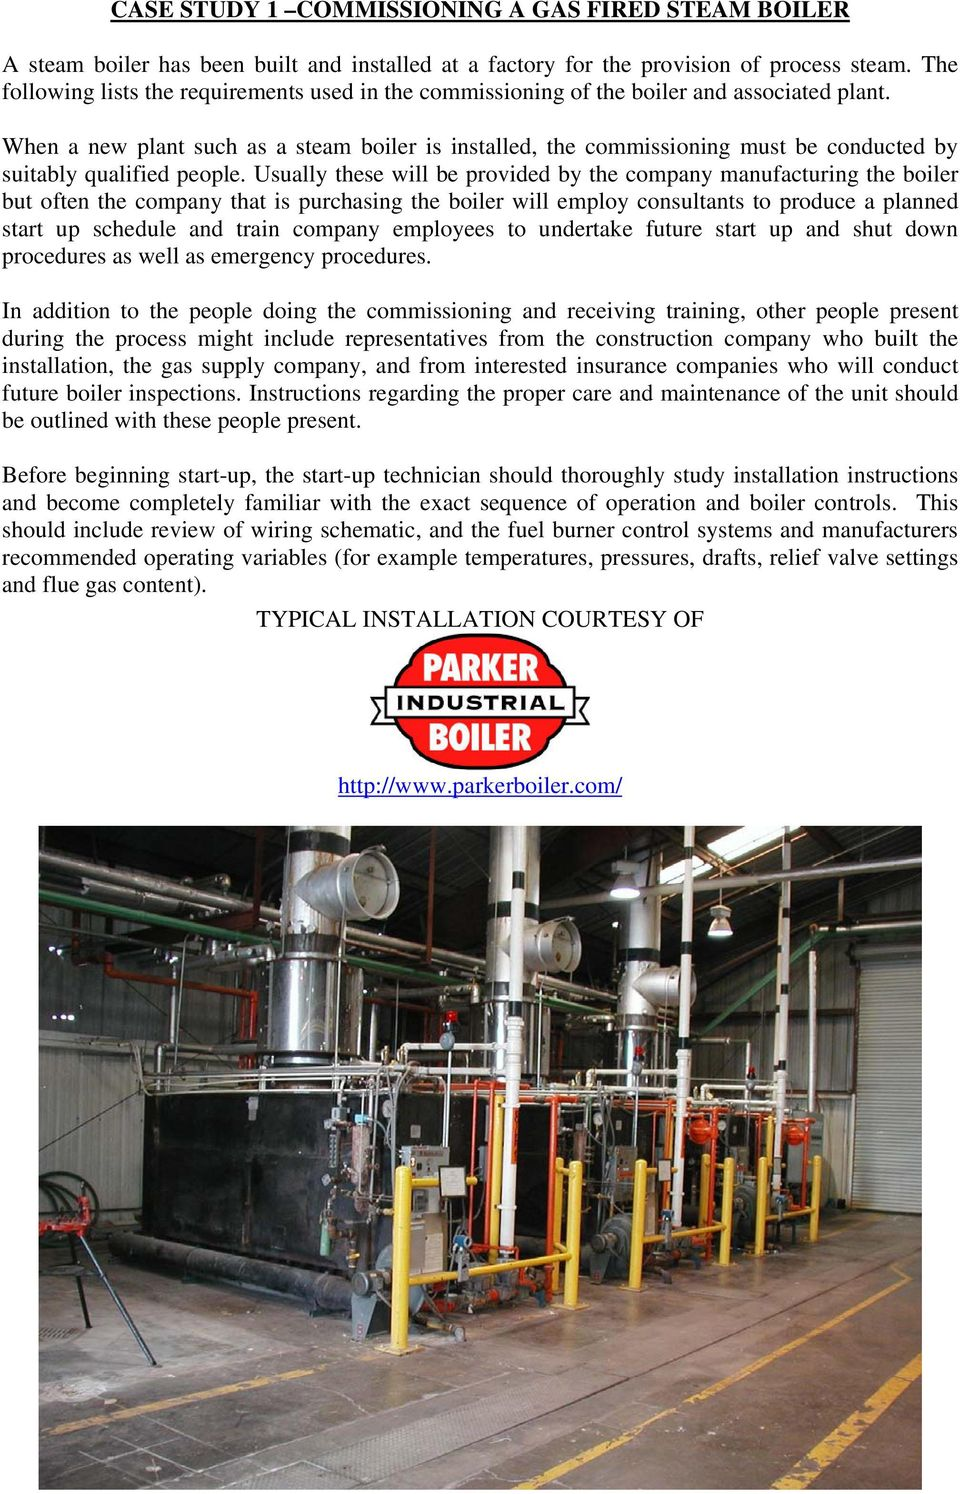 CASE STUDY 1 COMMISSIONING A GAS FIRED STEAM BOILER - PDF